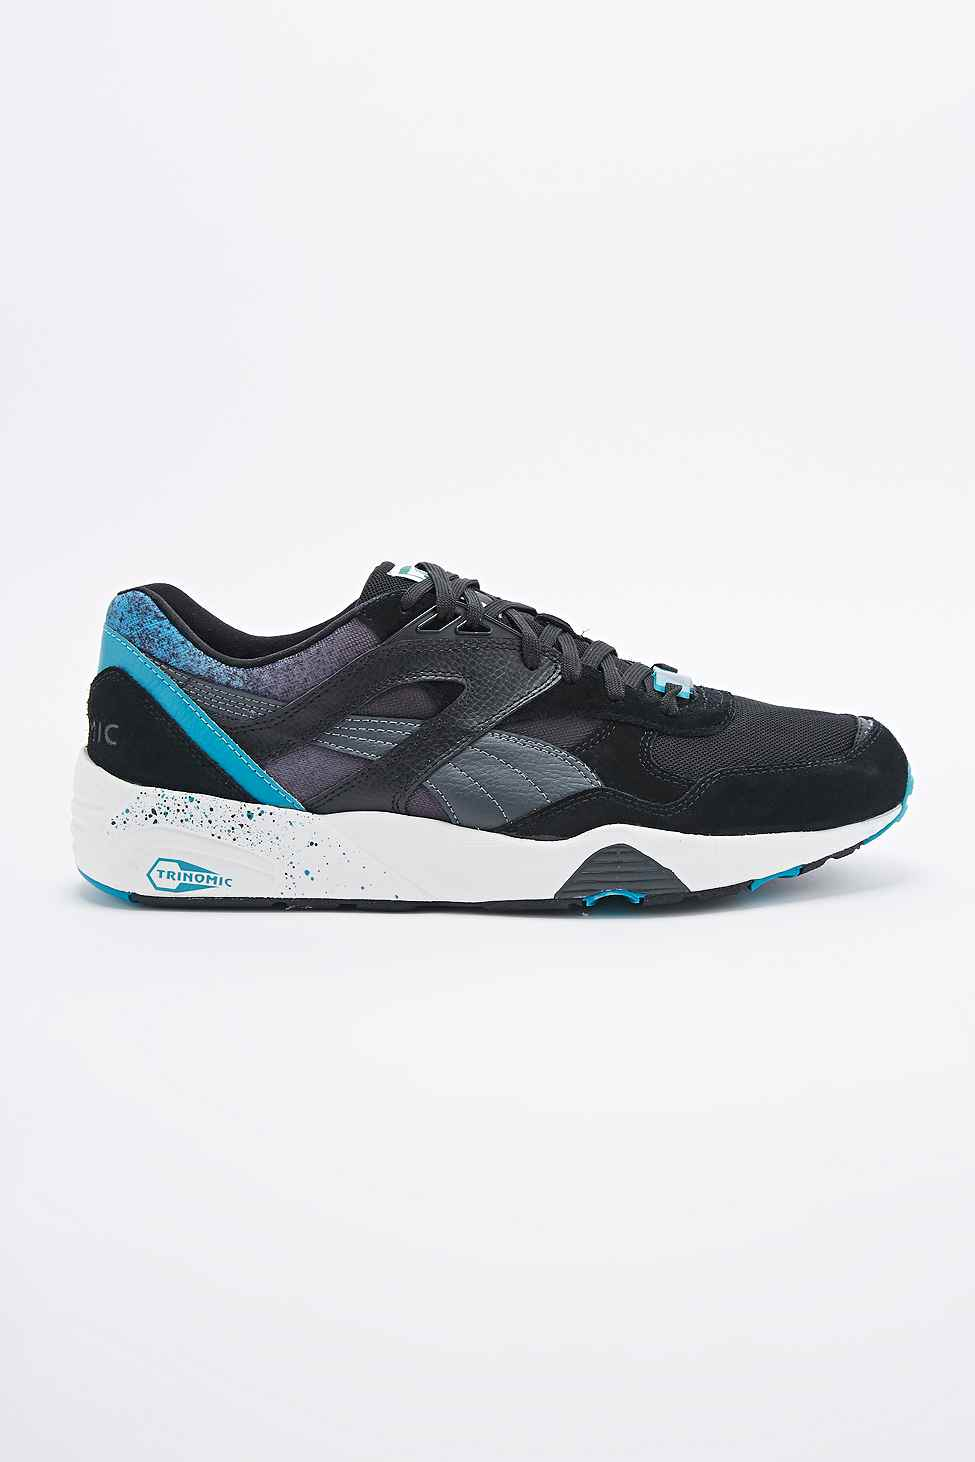 ... official store puma trinomic r698 splatter trainers in black in blue  for men lyst 40154 72623 27e635a4a